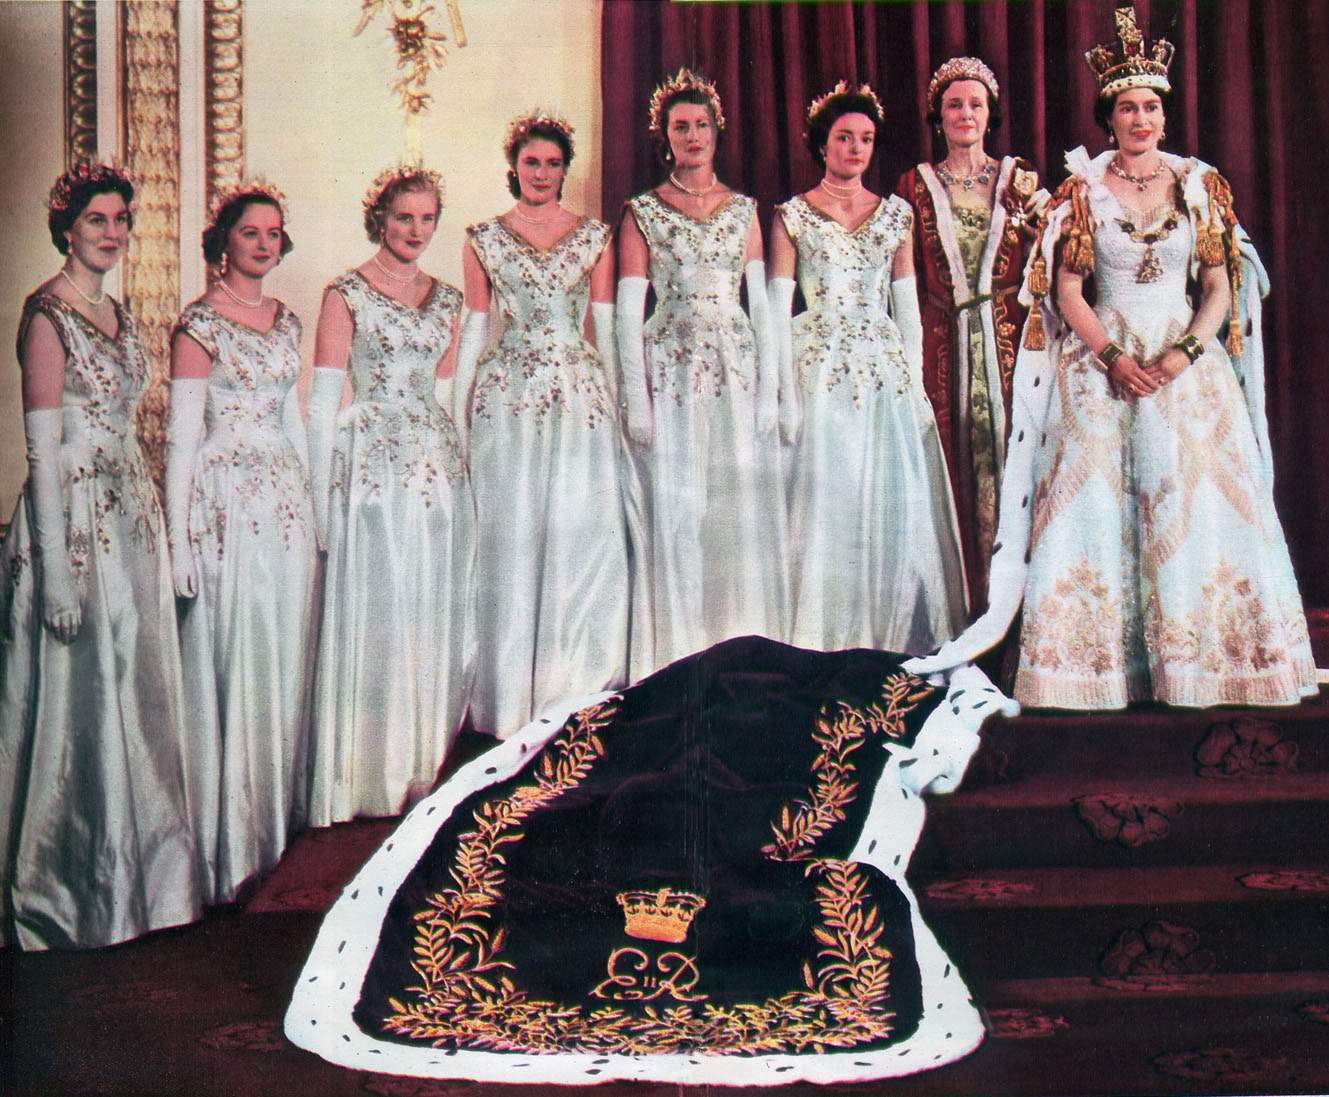 Queen Elizabeth II with her Coronation Maids of Honour 1953